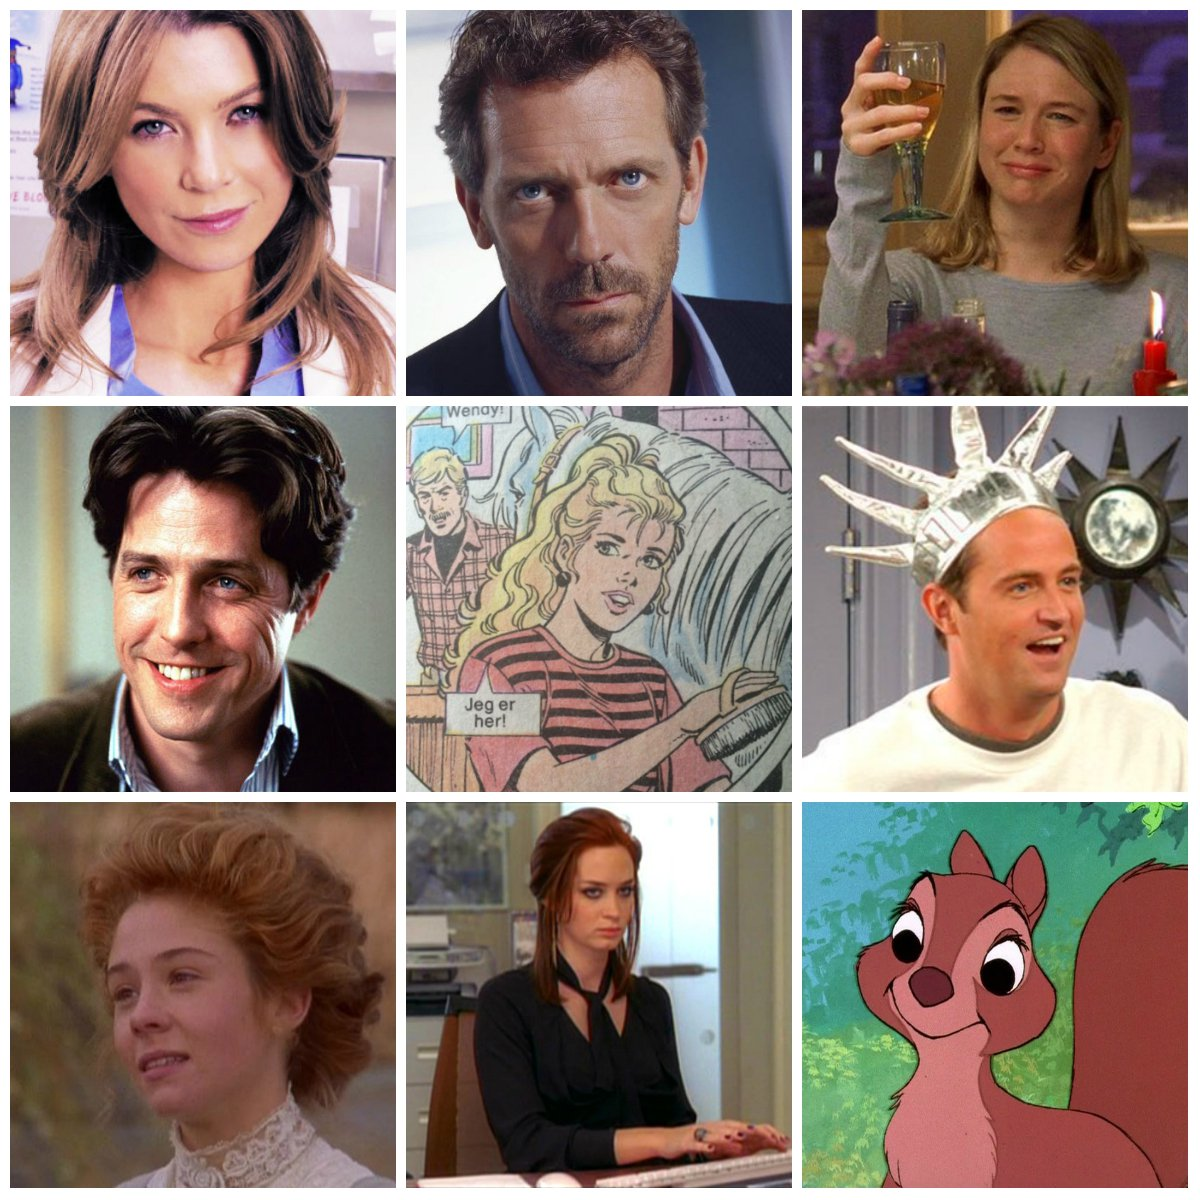 9fictionalcharactersiidentifywith